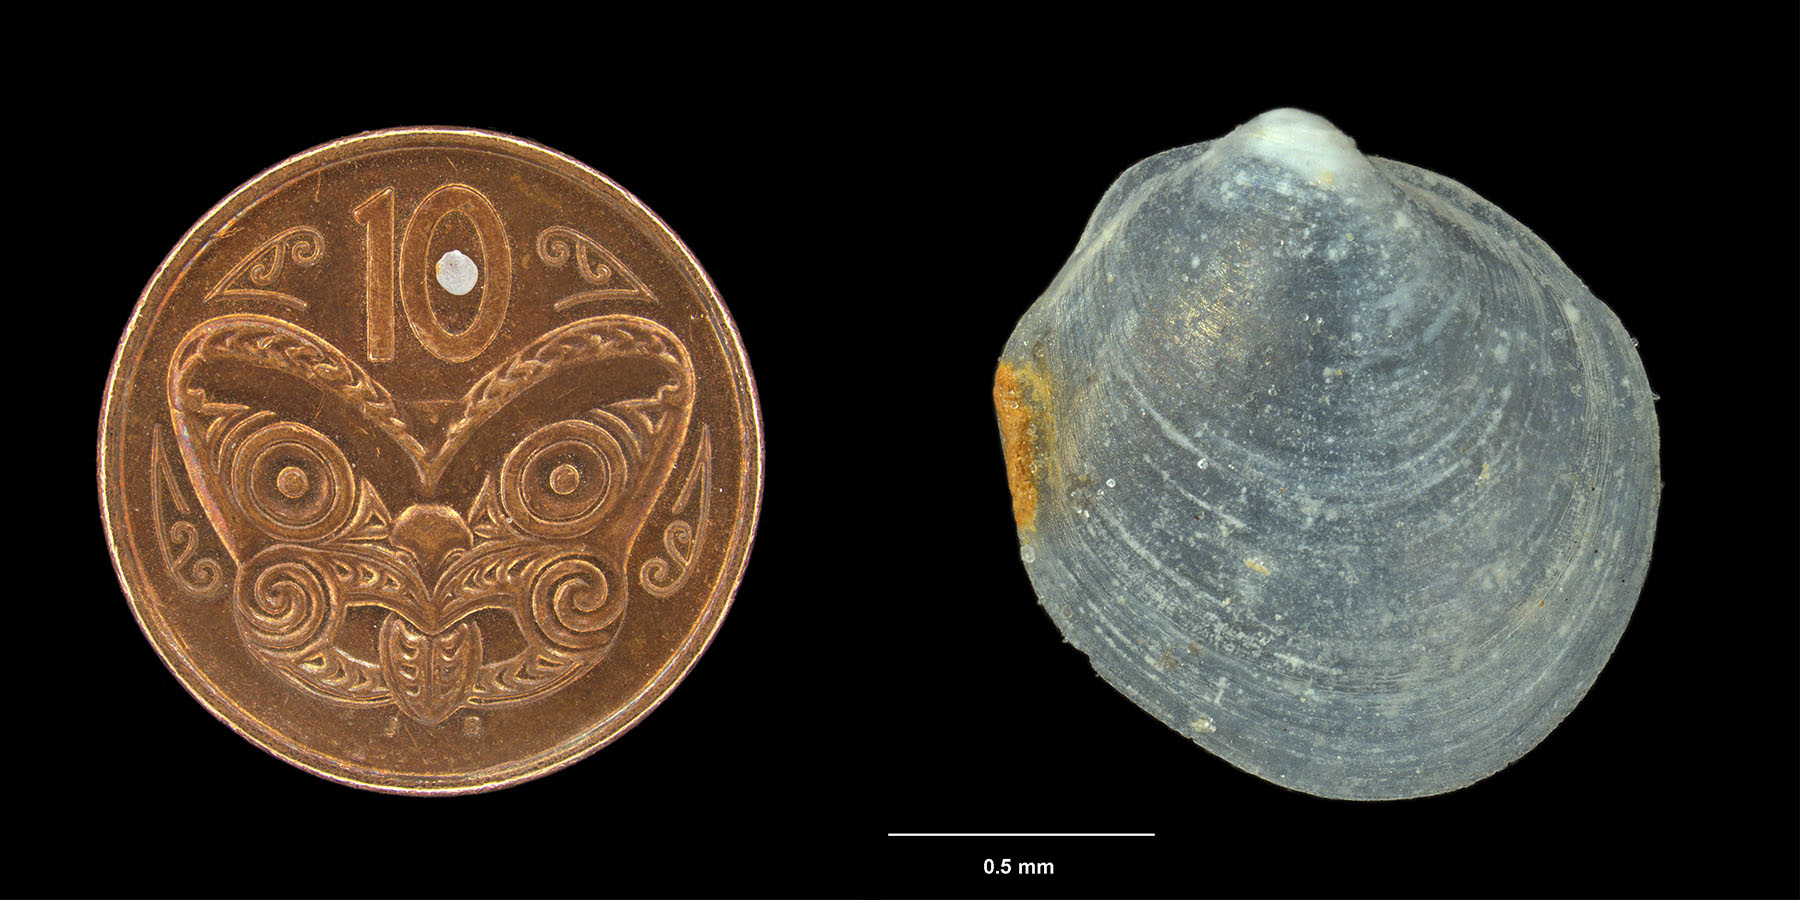 To the left you can see a tiny shell a 10 cents coin. On the right is the stacked photograph the microscope produced of the same shell